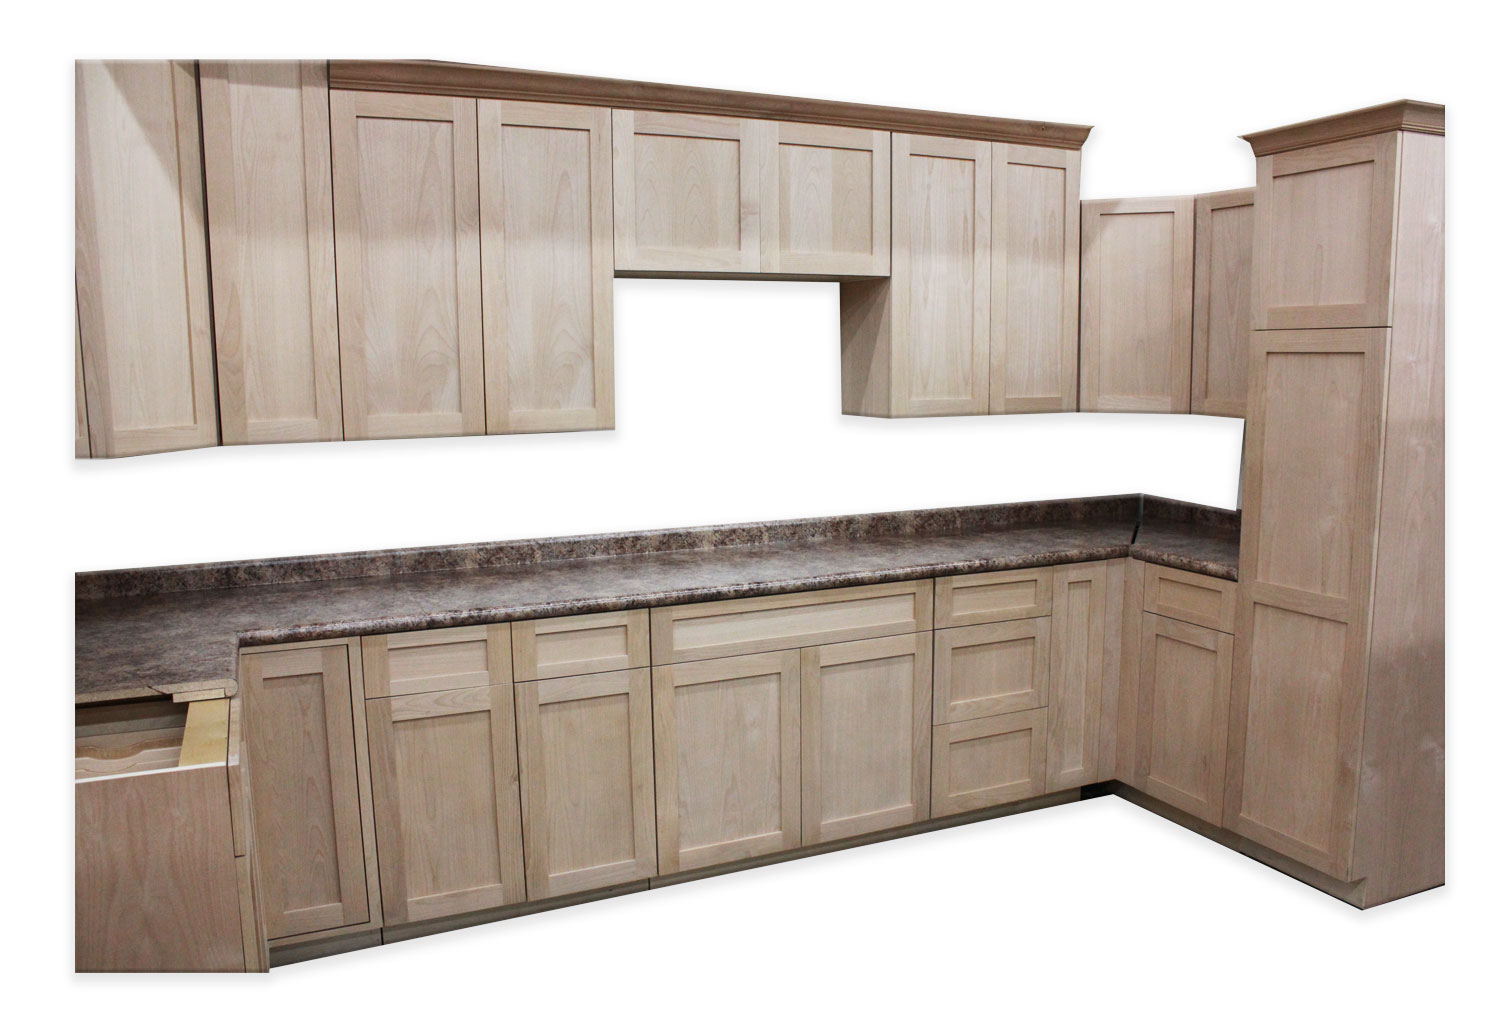 unifinished_lancaster_alder_kitchen_cabinets.jpg